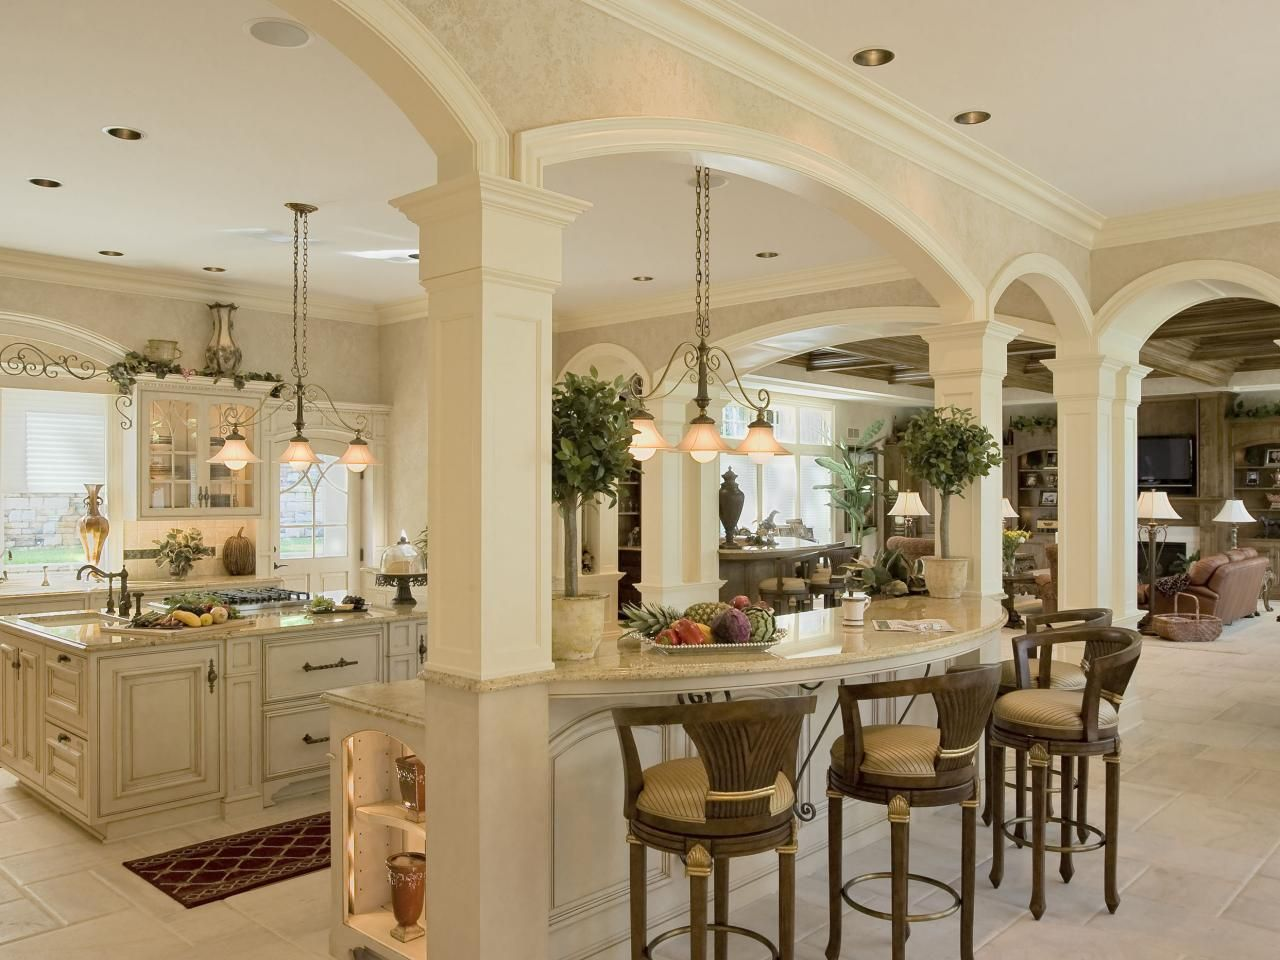 Kitchen Designers Houston Brilliant This Kitchen Was Designed For Efficient Cooking And It Looks Design Inspiration